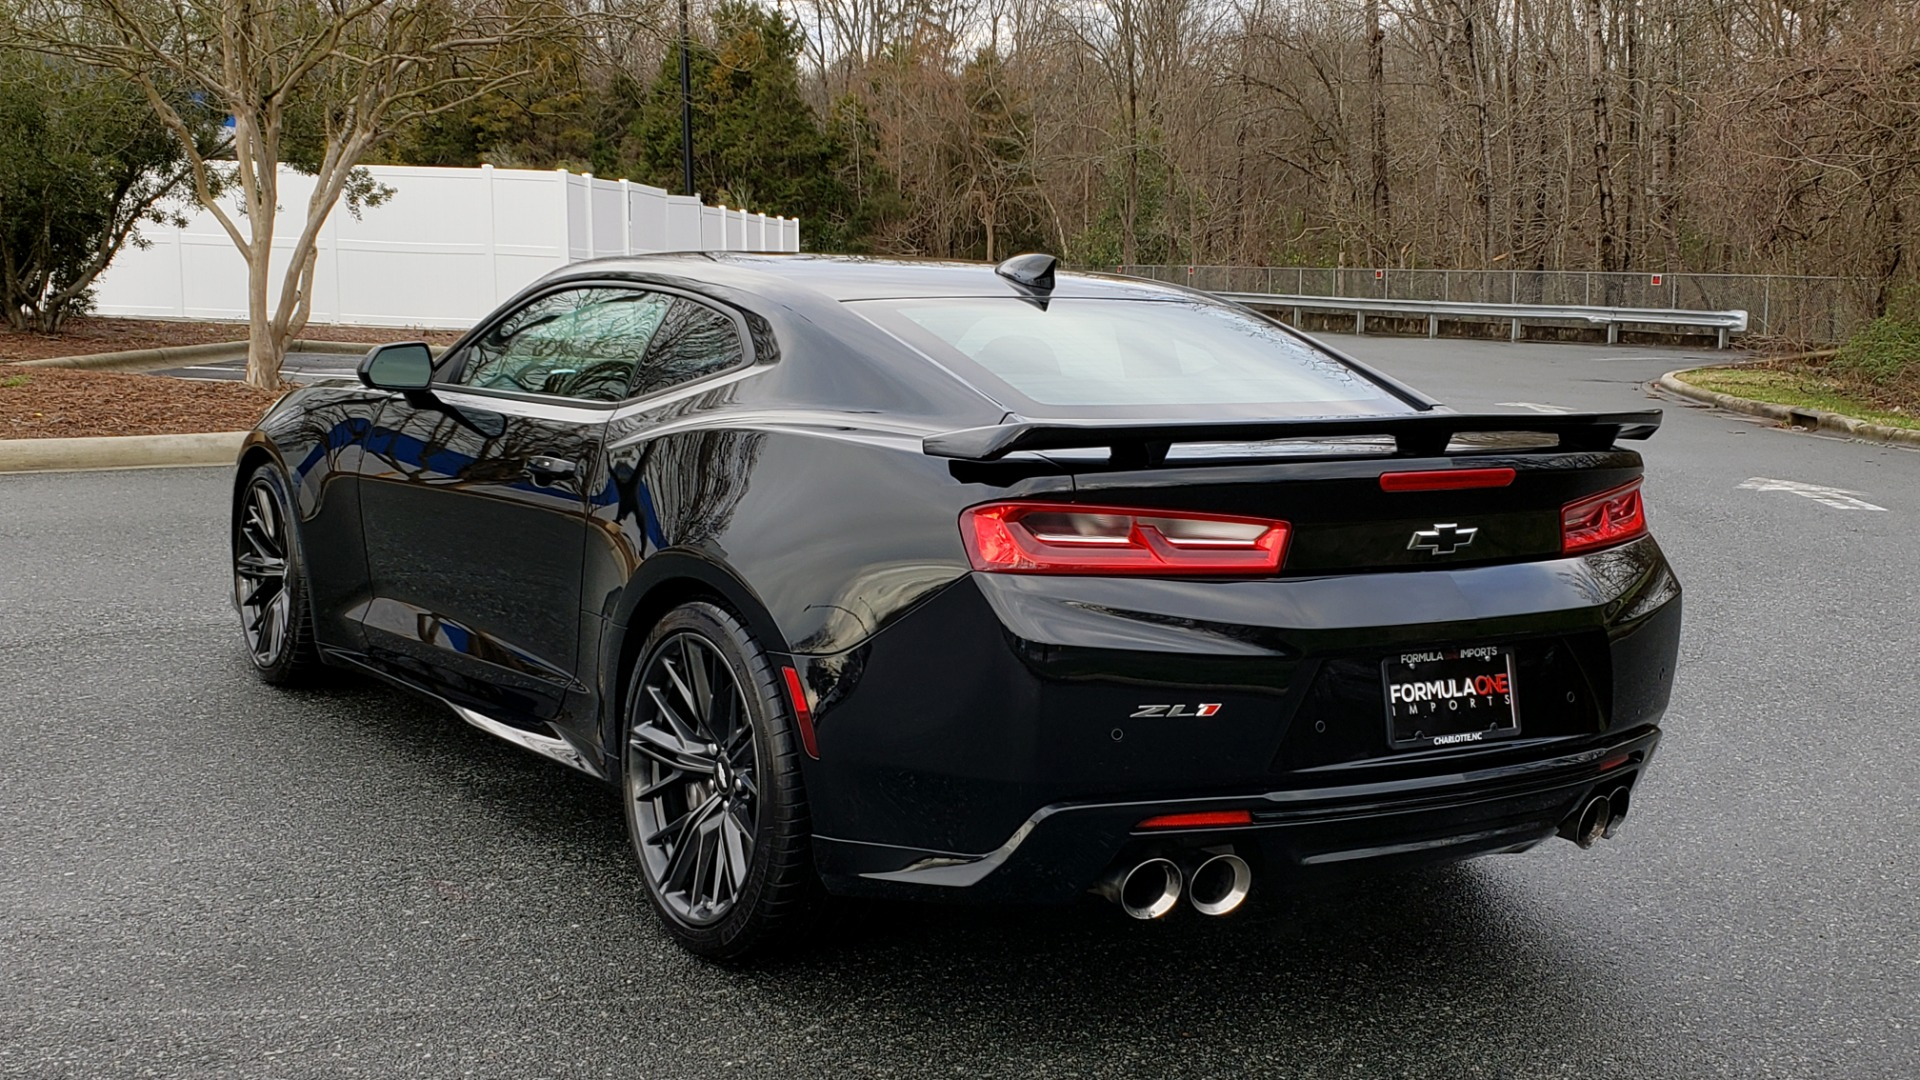 Used 2018 Chevrolet CAMARO ZL1 6.2L SUPERCHARGED V8 650 / NAV / SUNROOF / REARVIEW for sale Sold at Formula Imports in Charlotte NC 28227 5